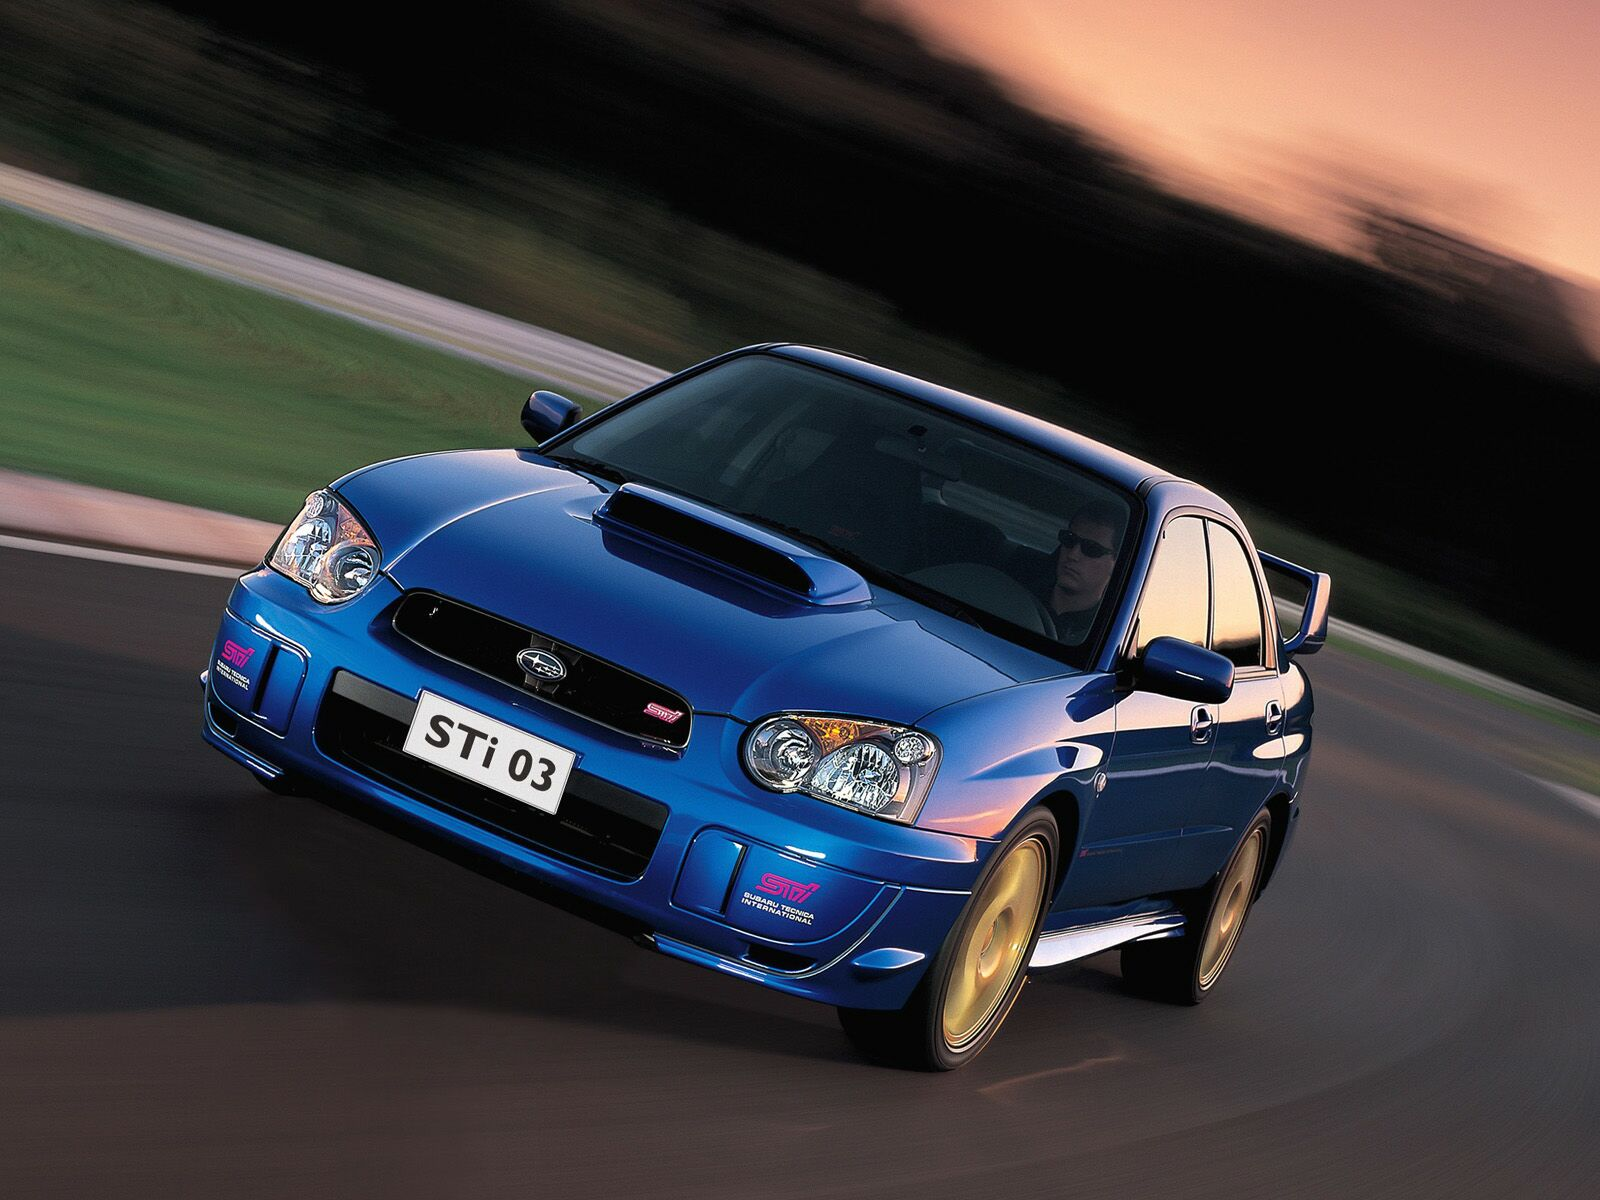 Picture of 2005 Subaru Impreza WRX STi Base